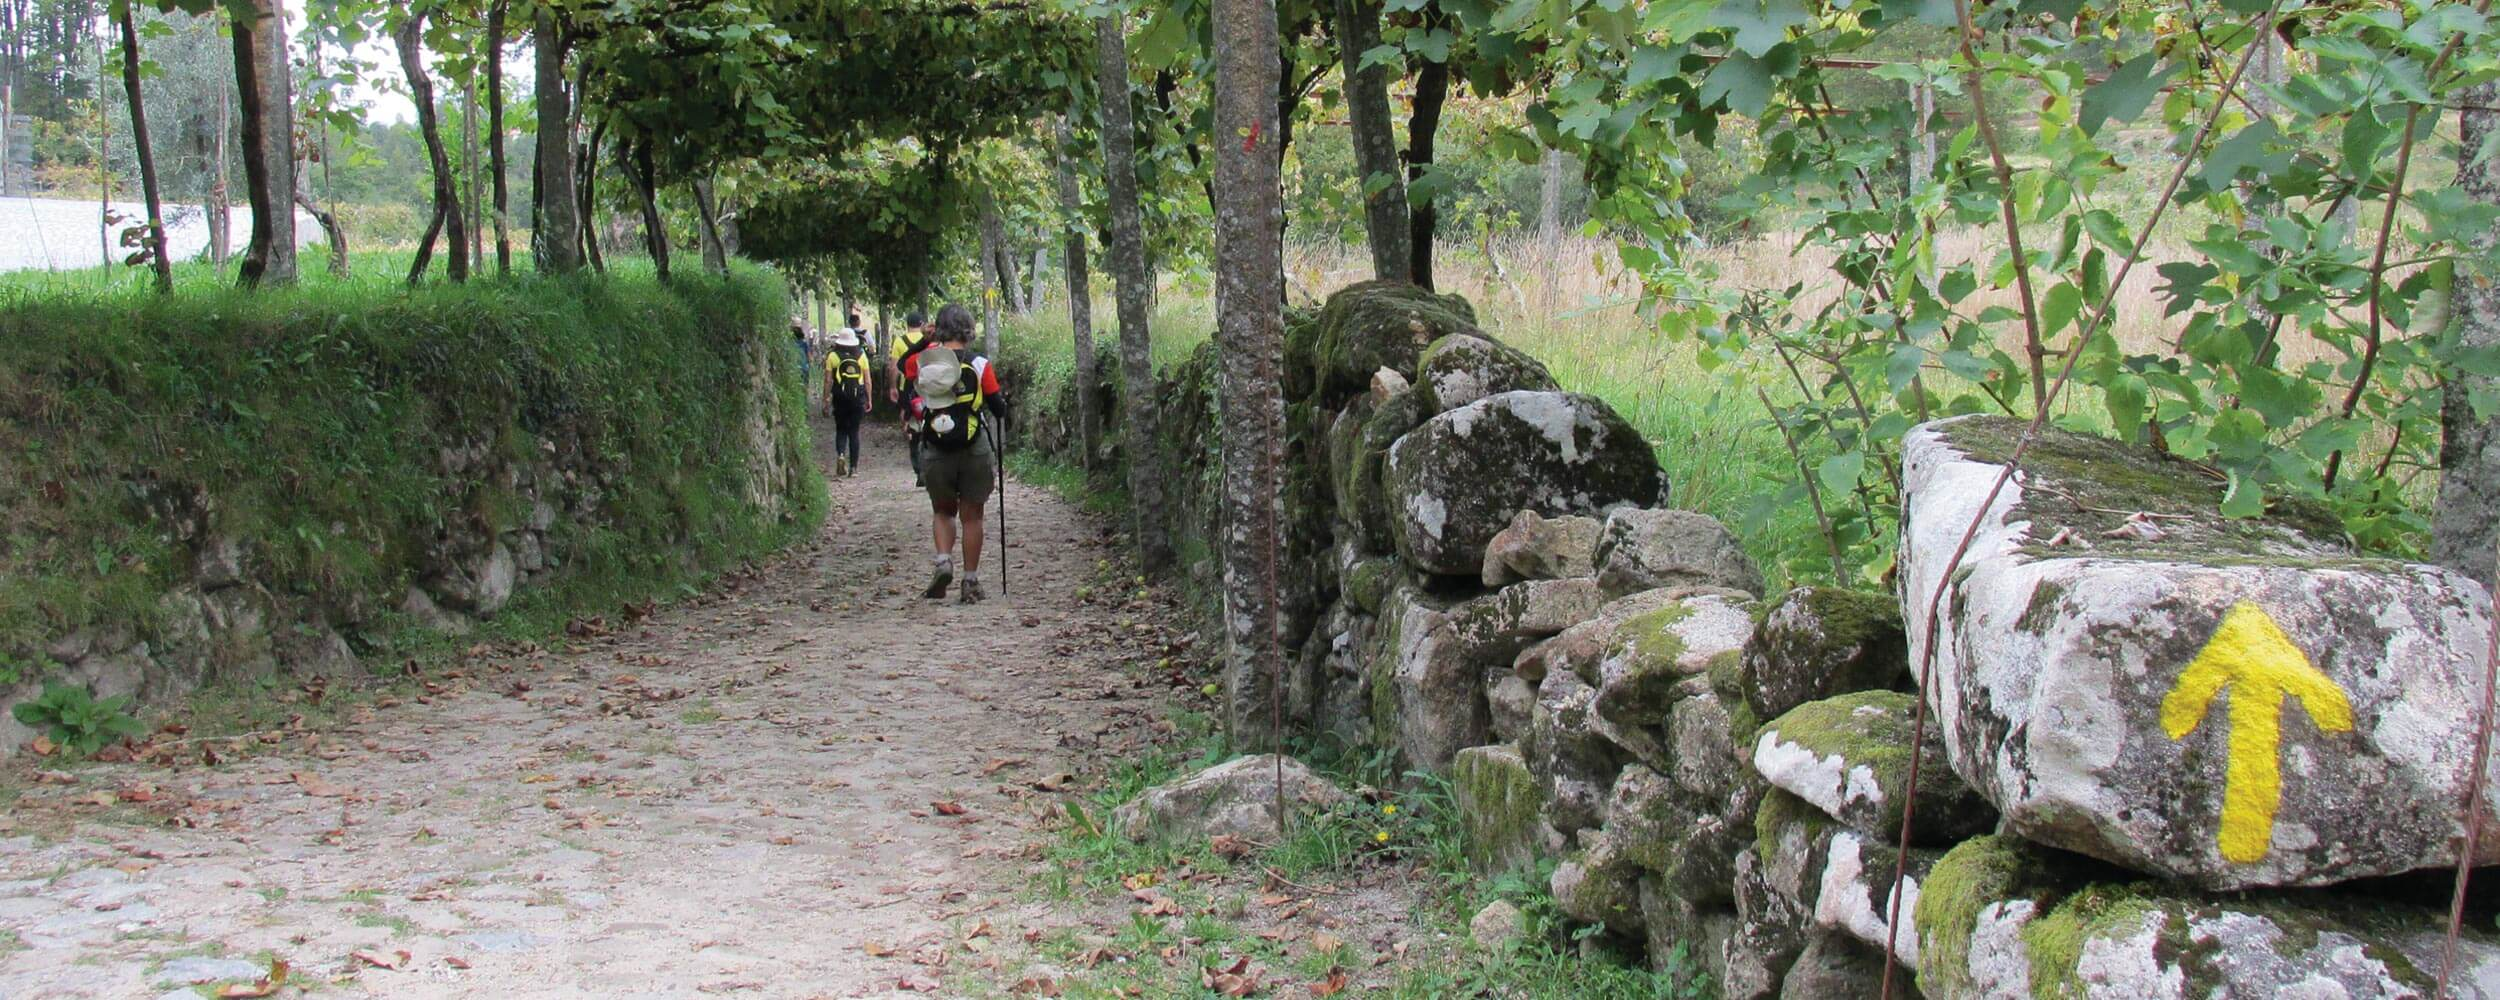 One of Europe's oldest pilgrimage routes